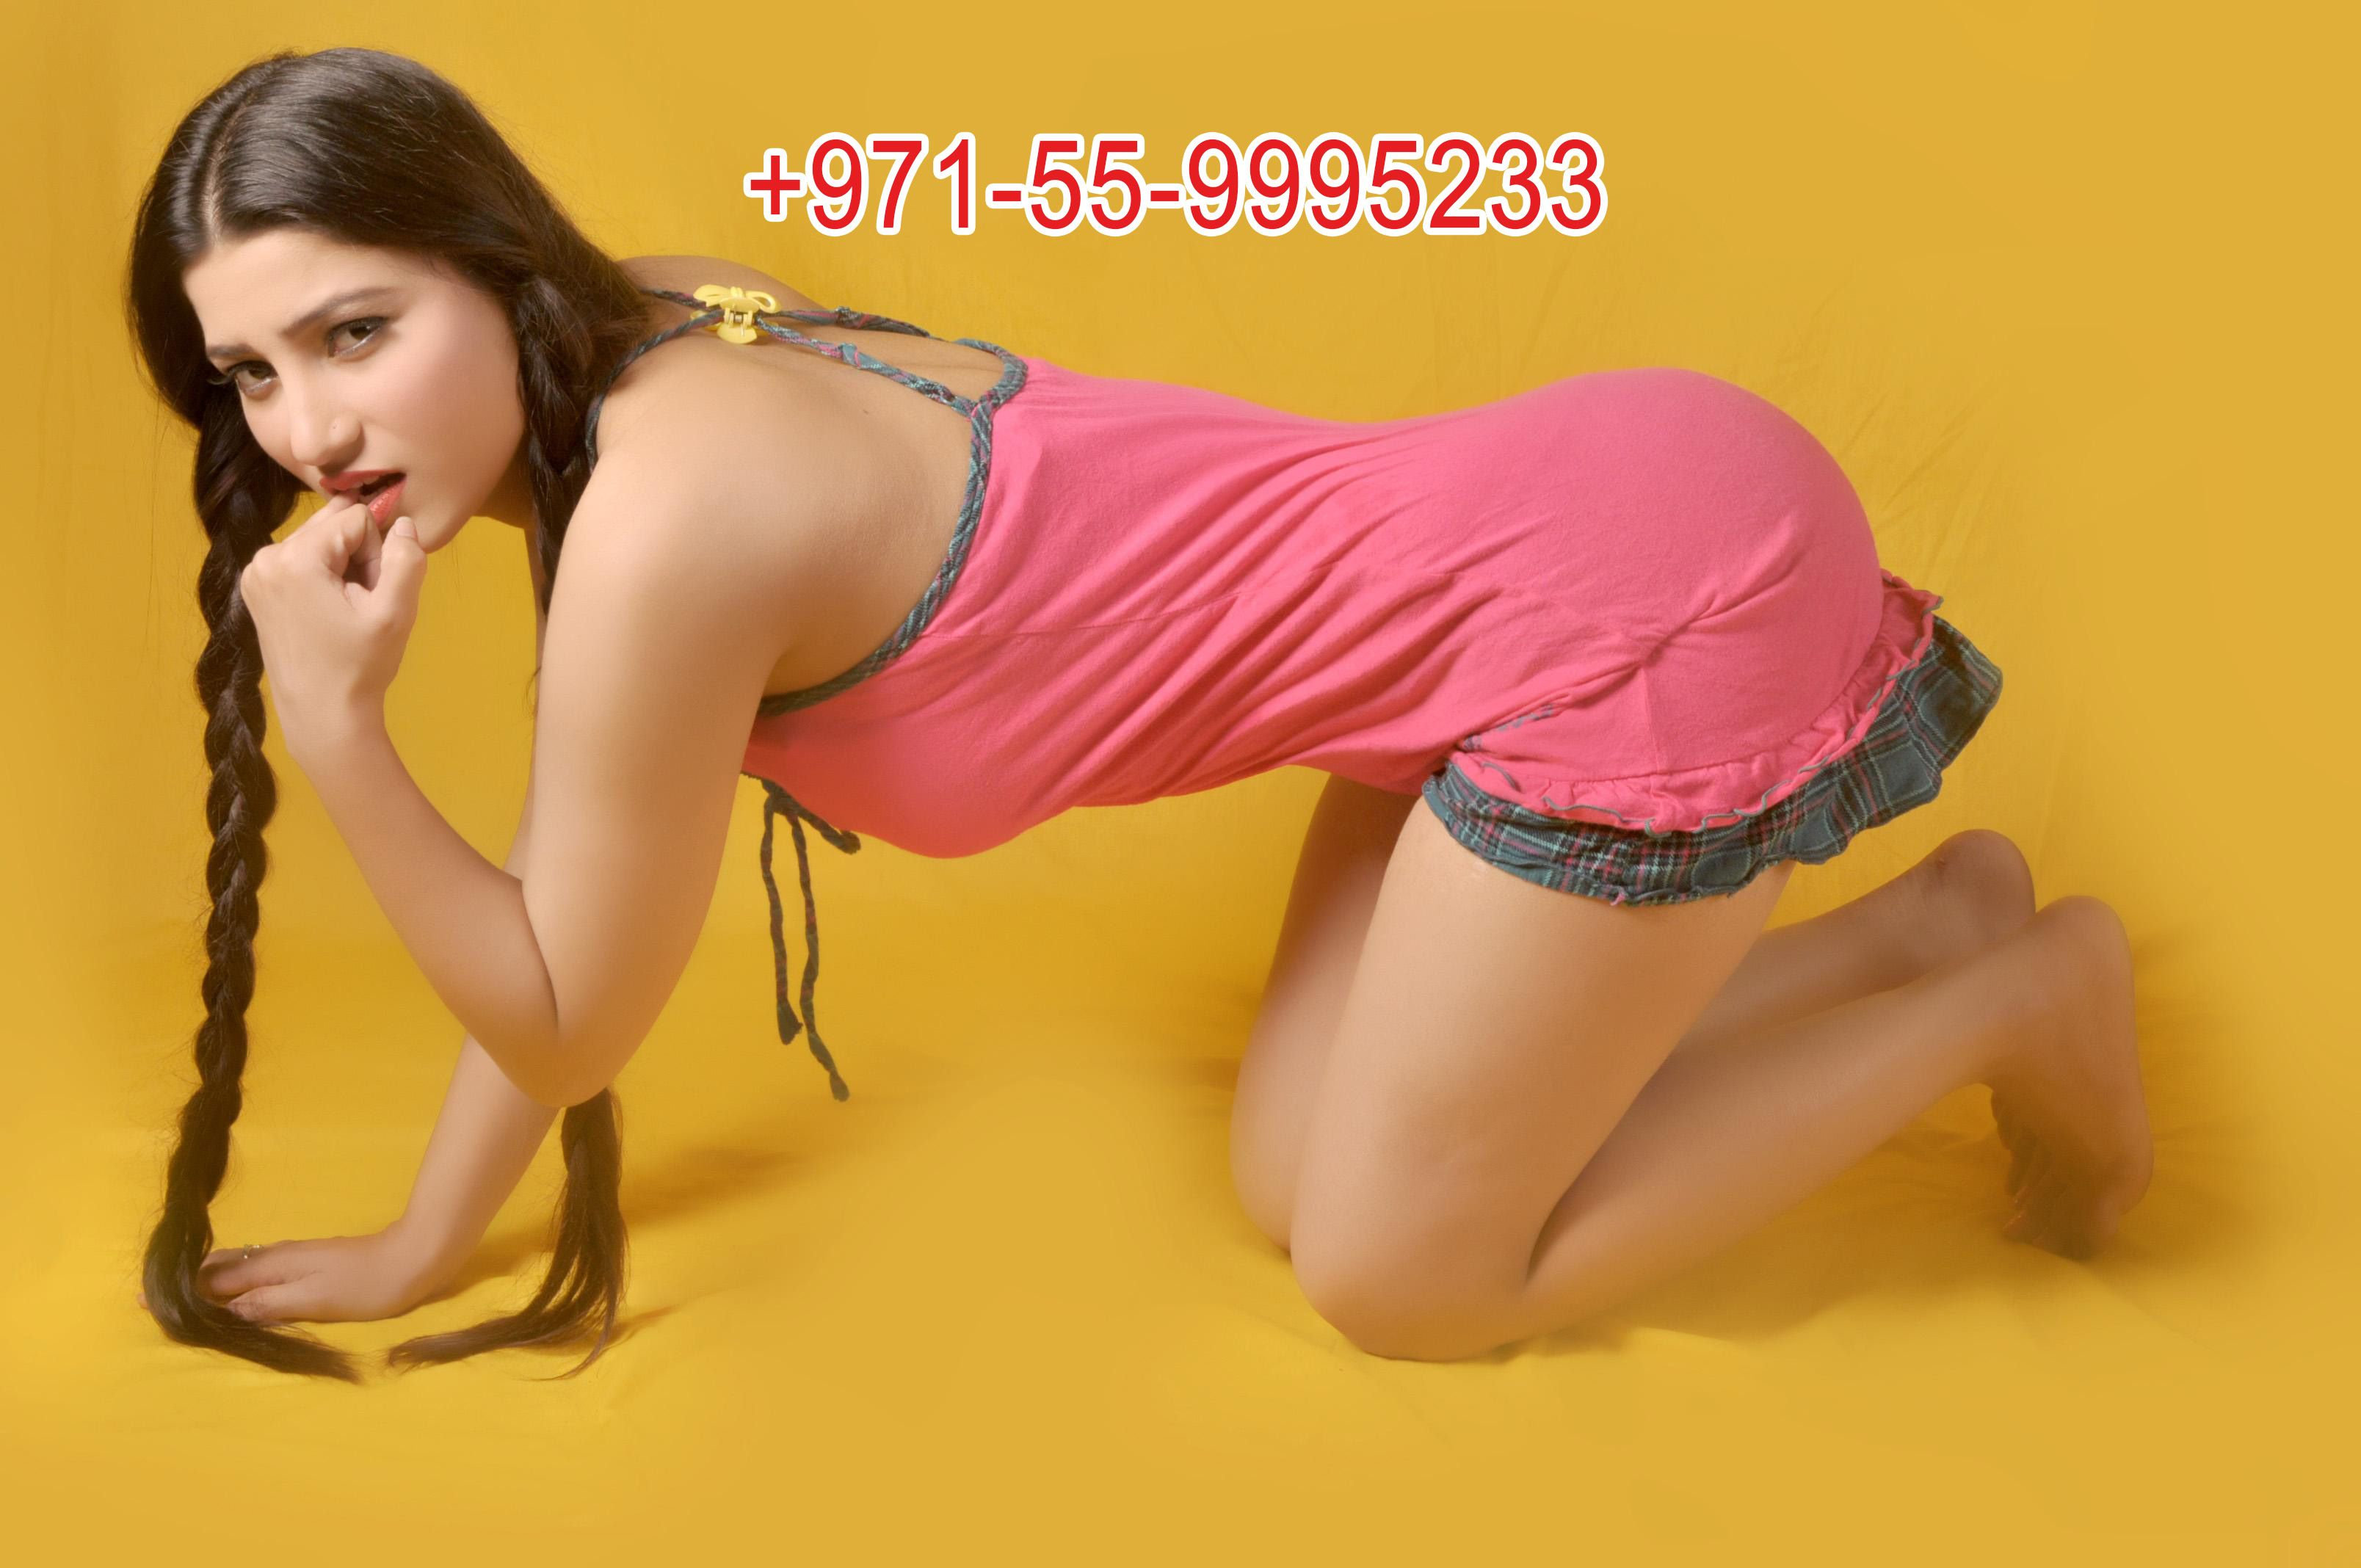 S WANTED BACKPACKER ESCORTS